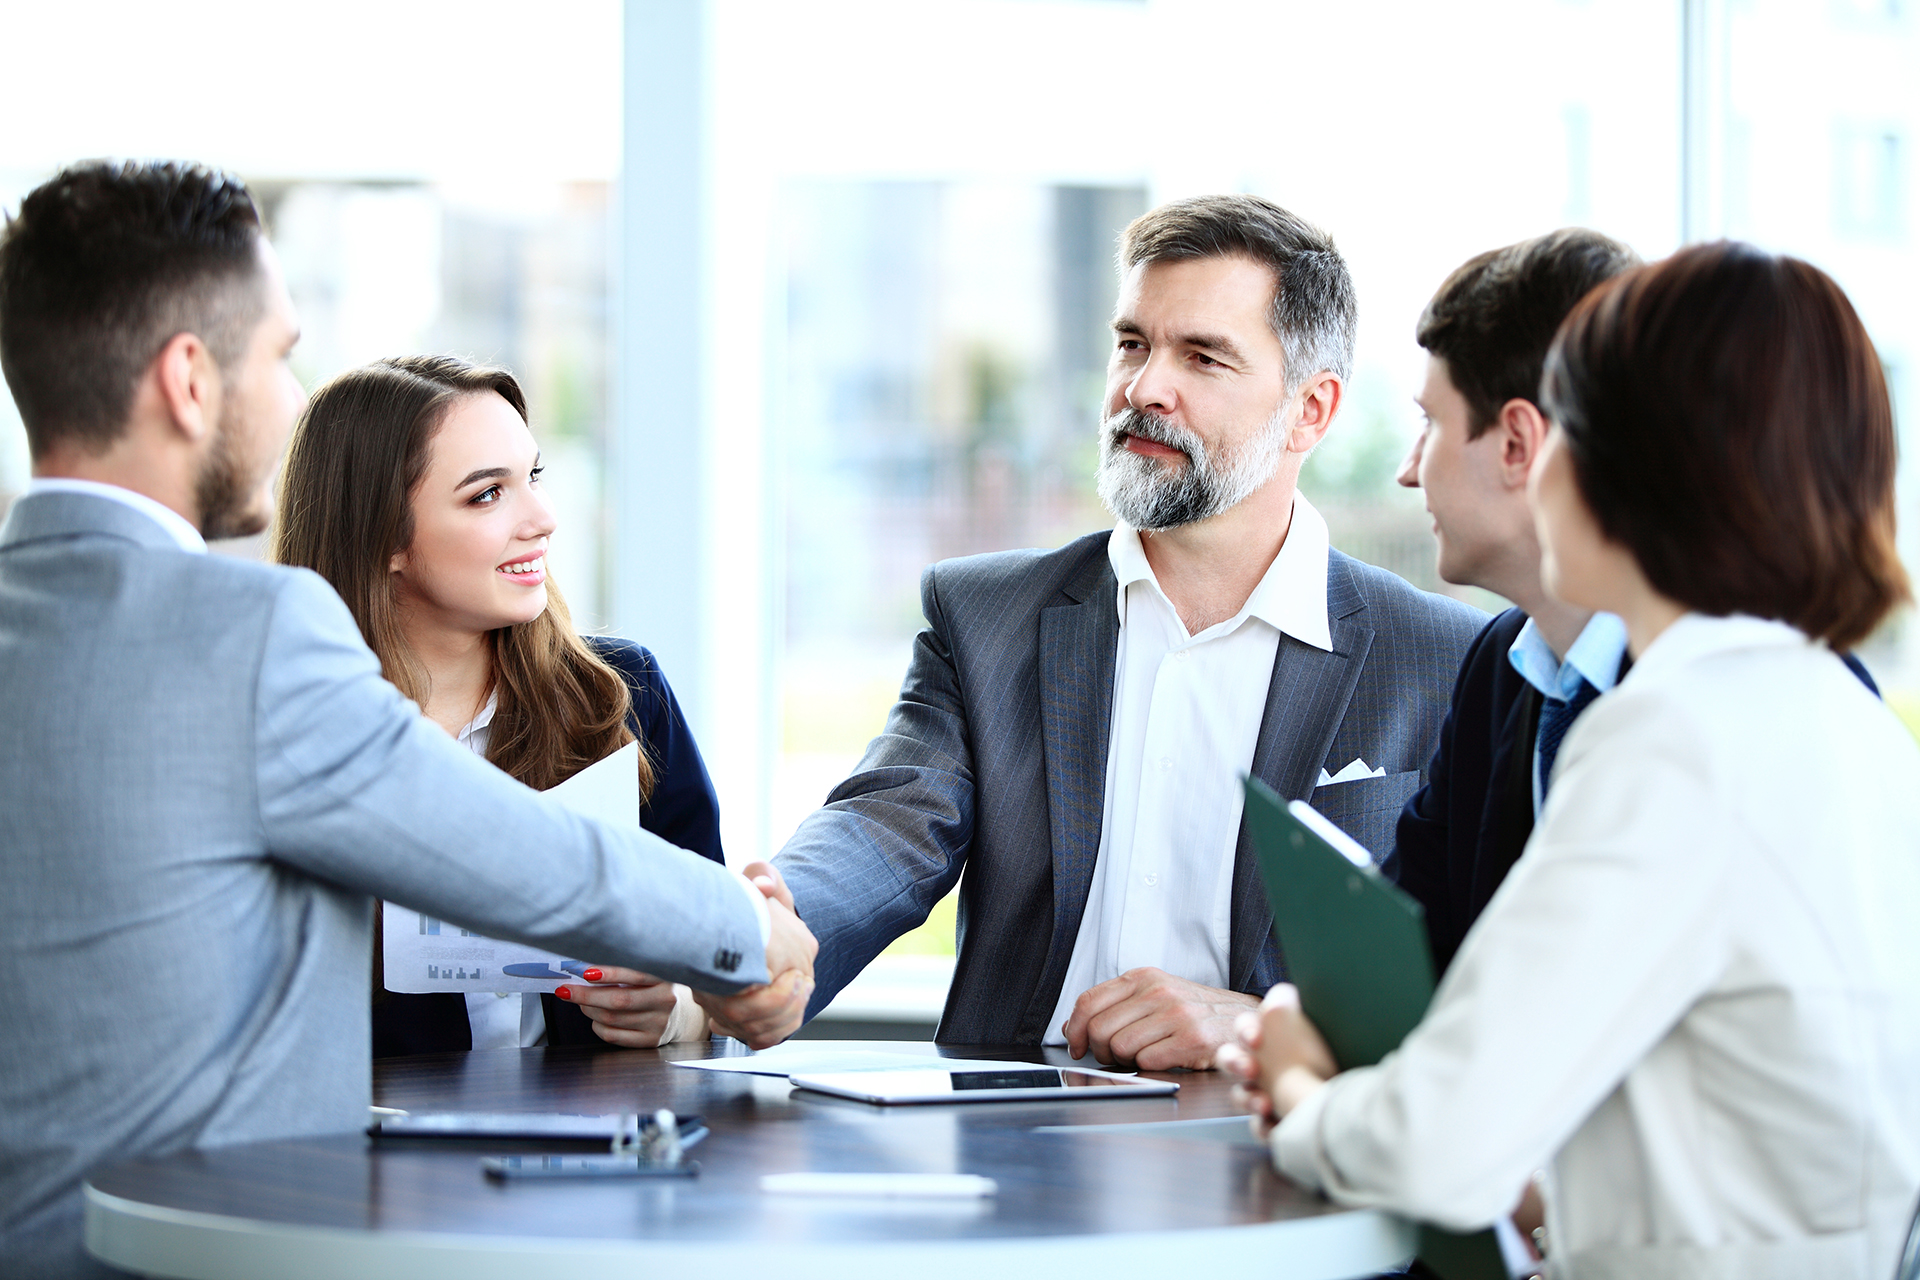 business team having friendly handshake over table at a meeting